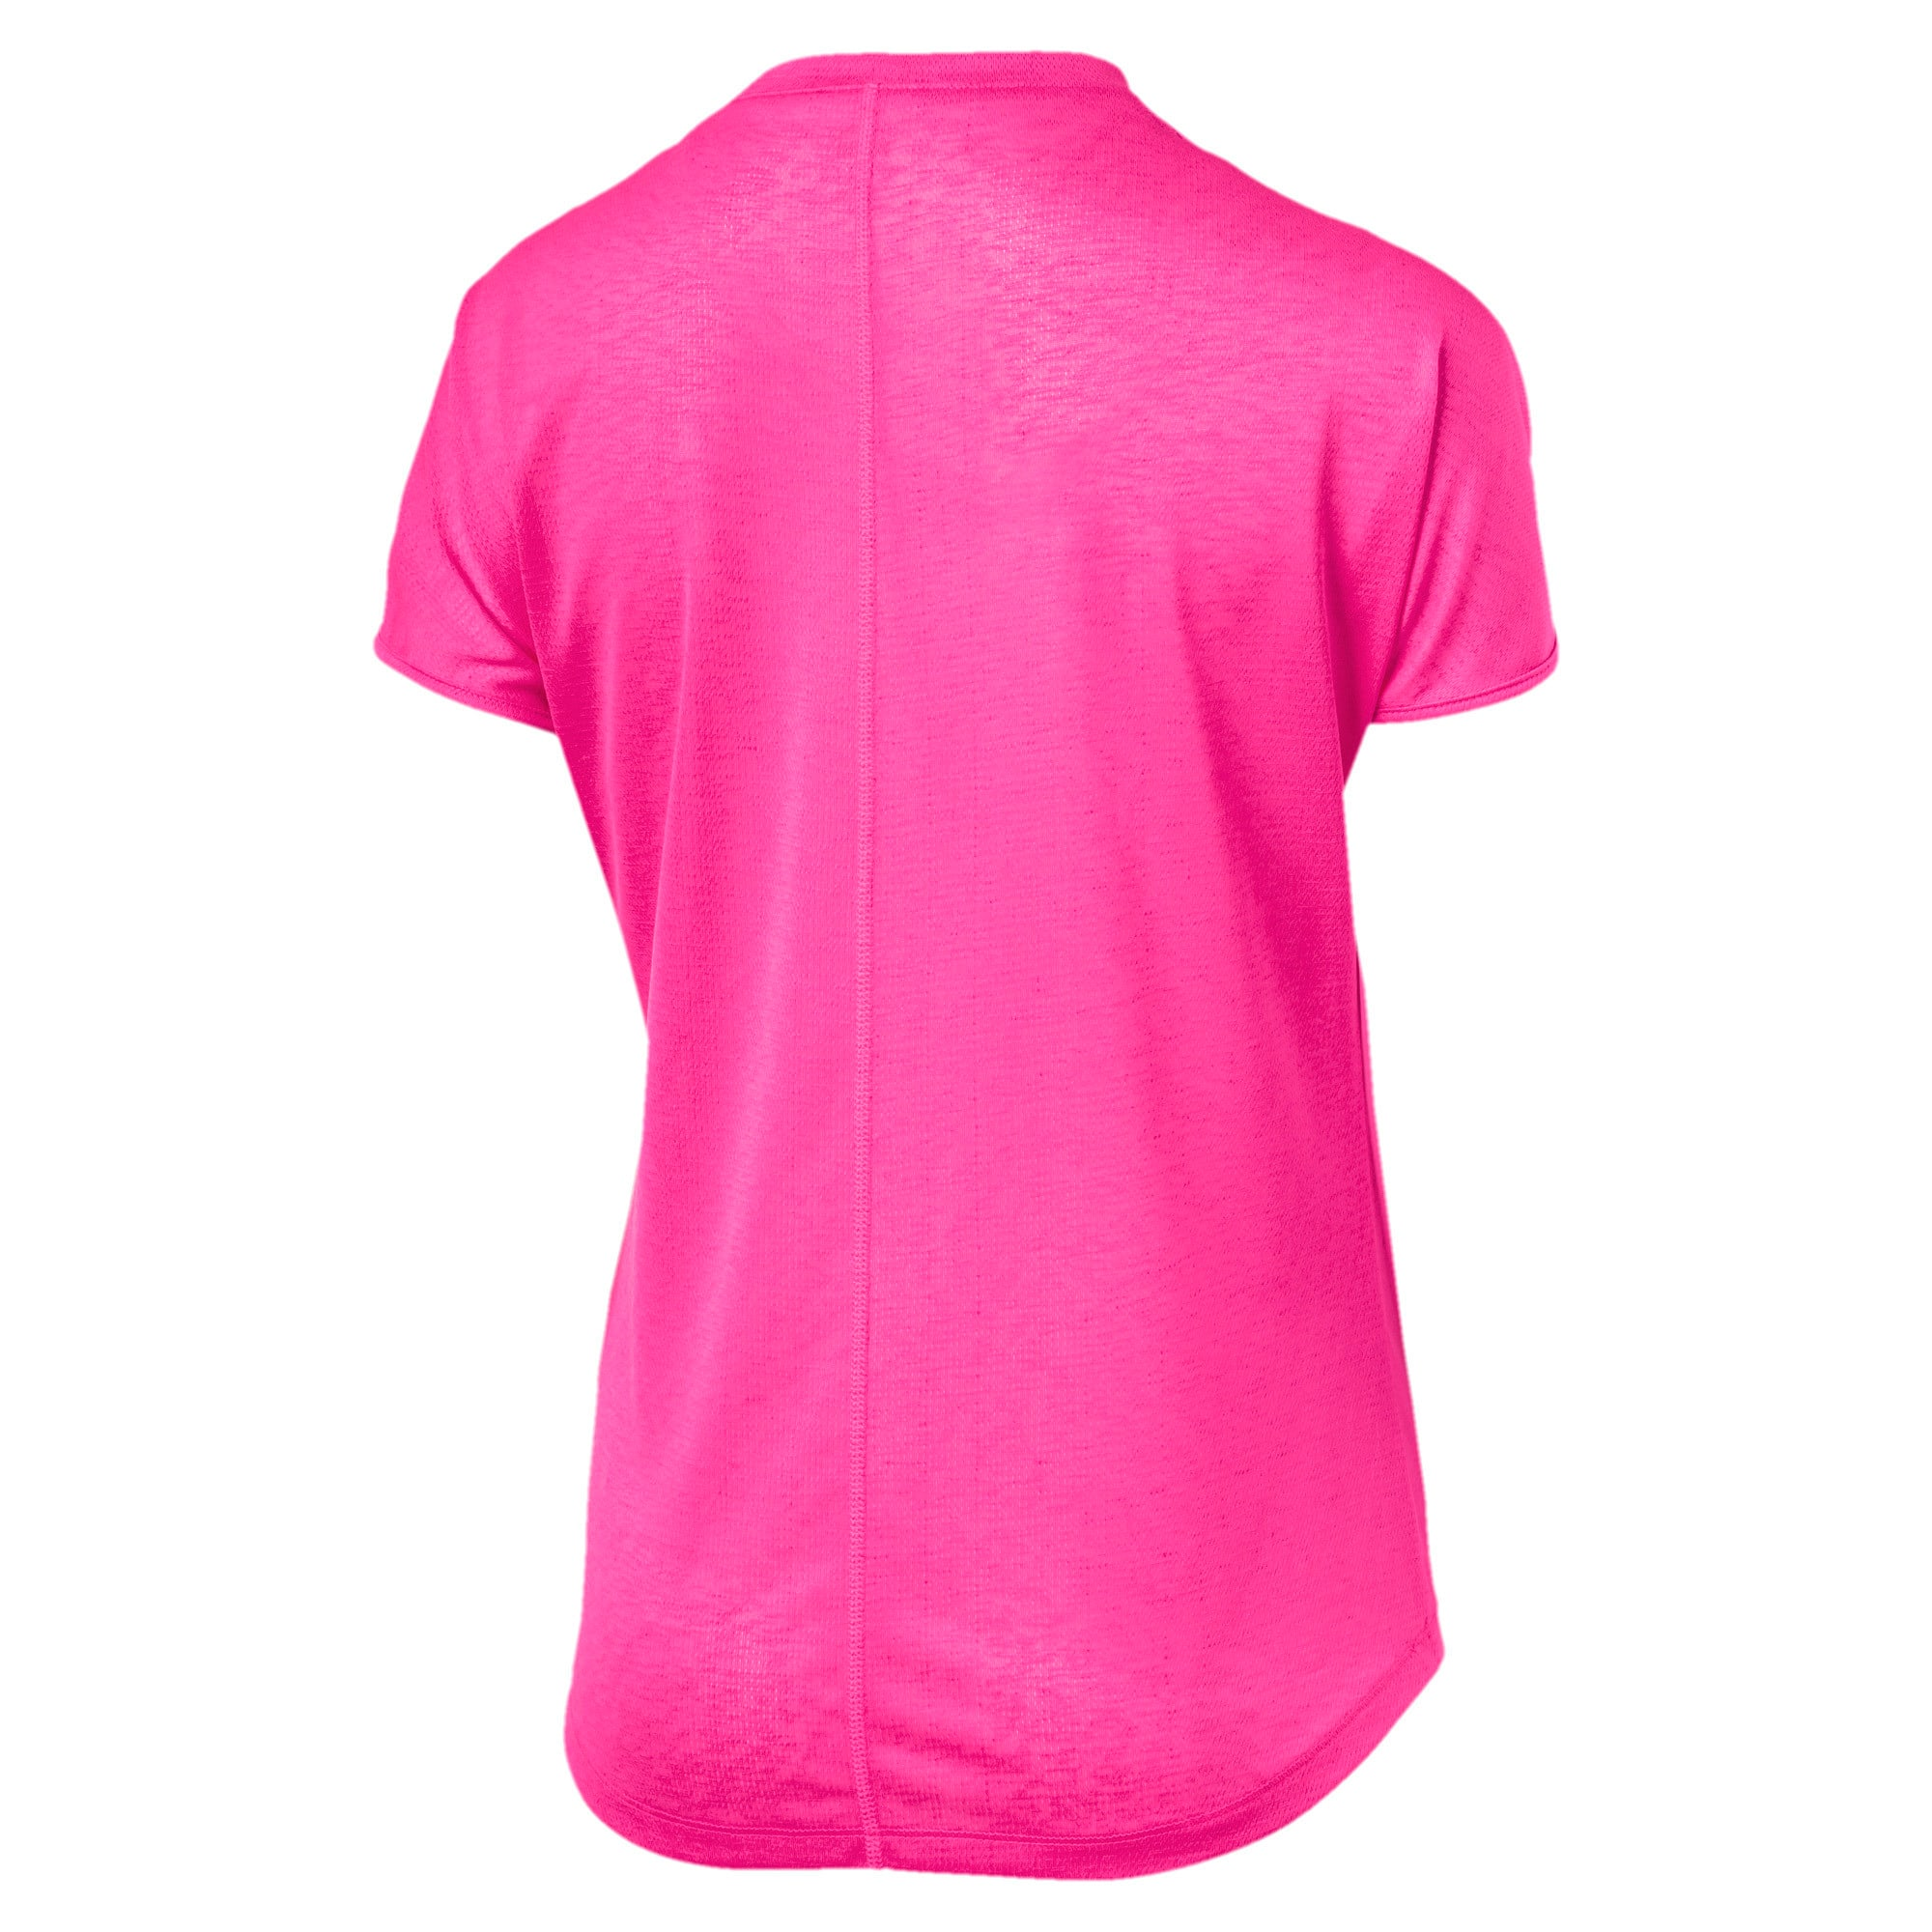 Thumbnail 5 of A.C.E. Crew Neck Women's T-Shirt, KNOCKOUT PINK, medium-IND